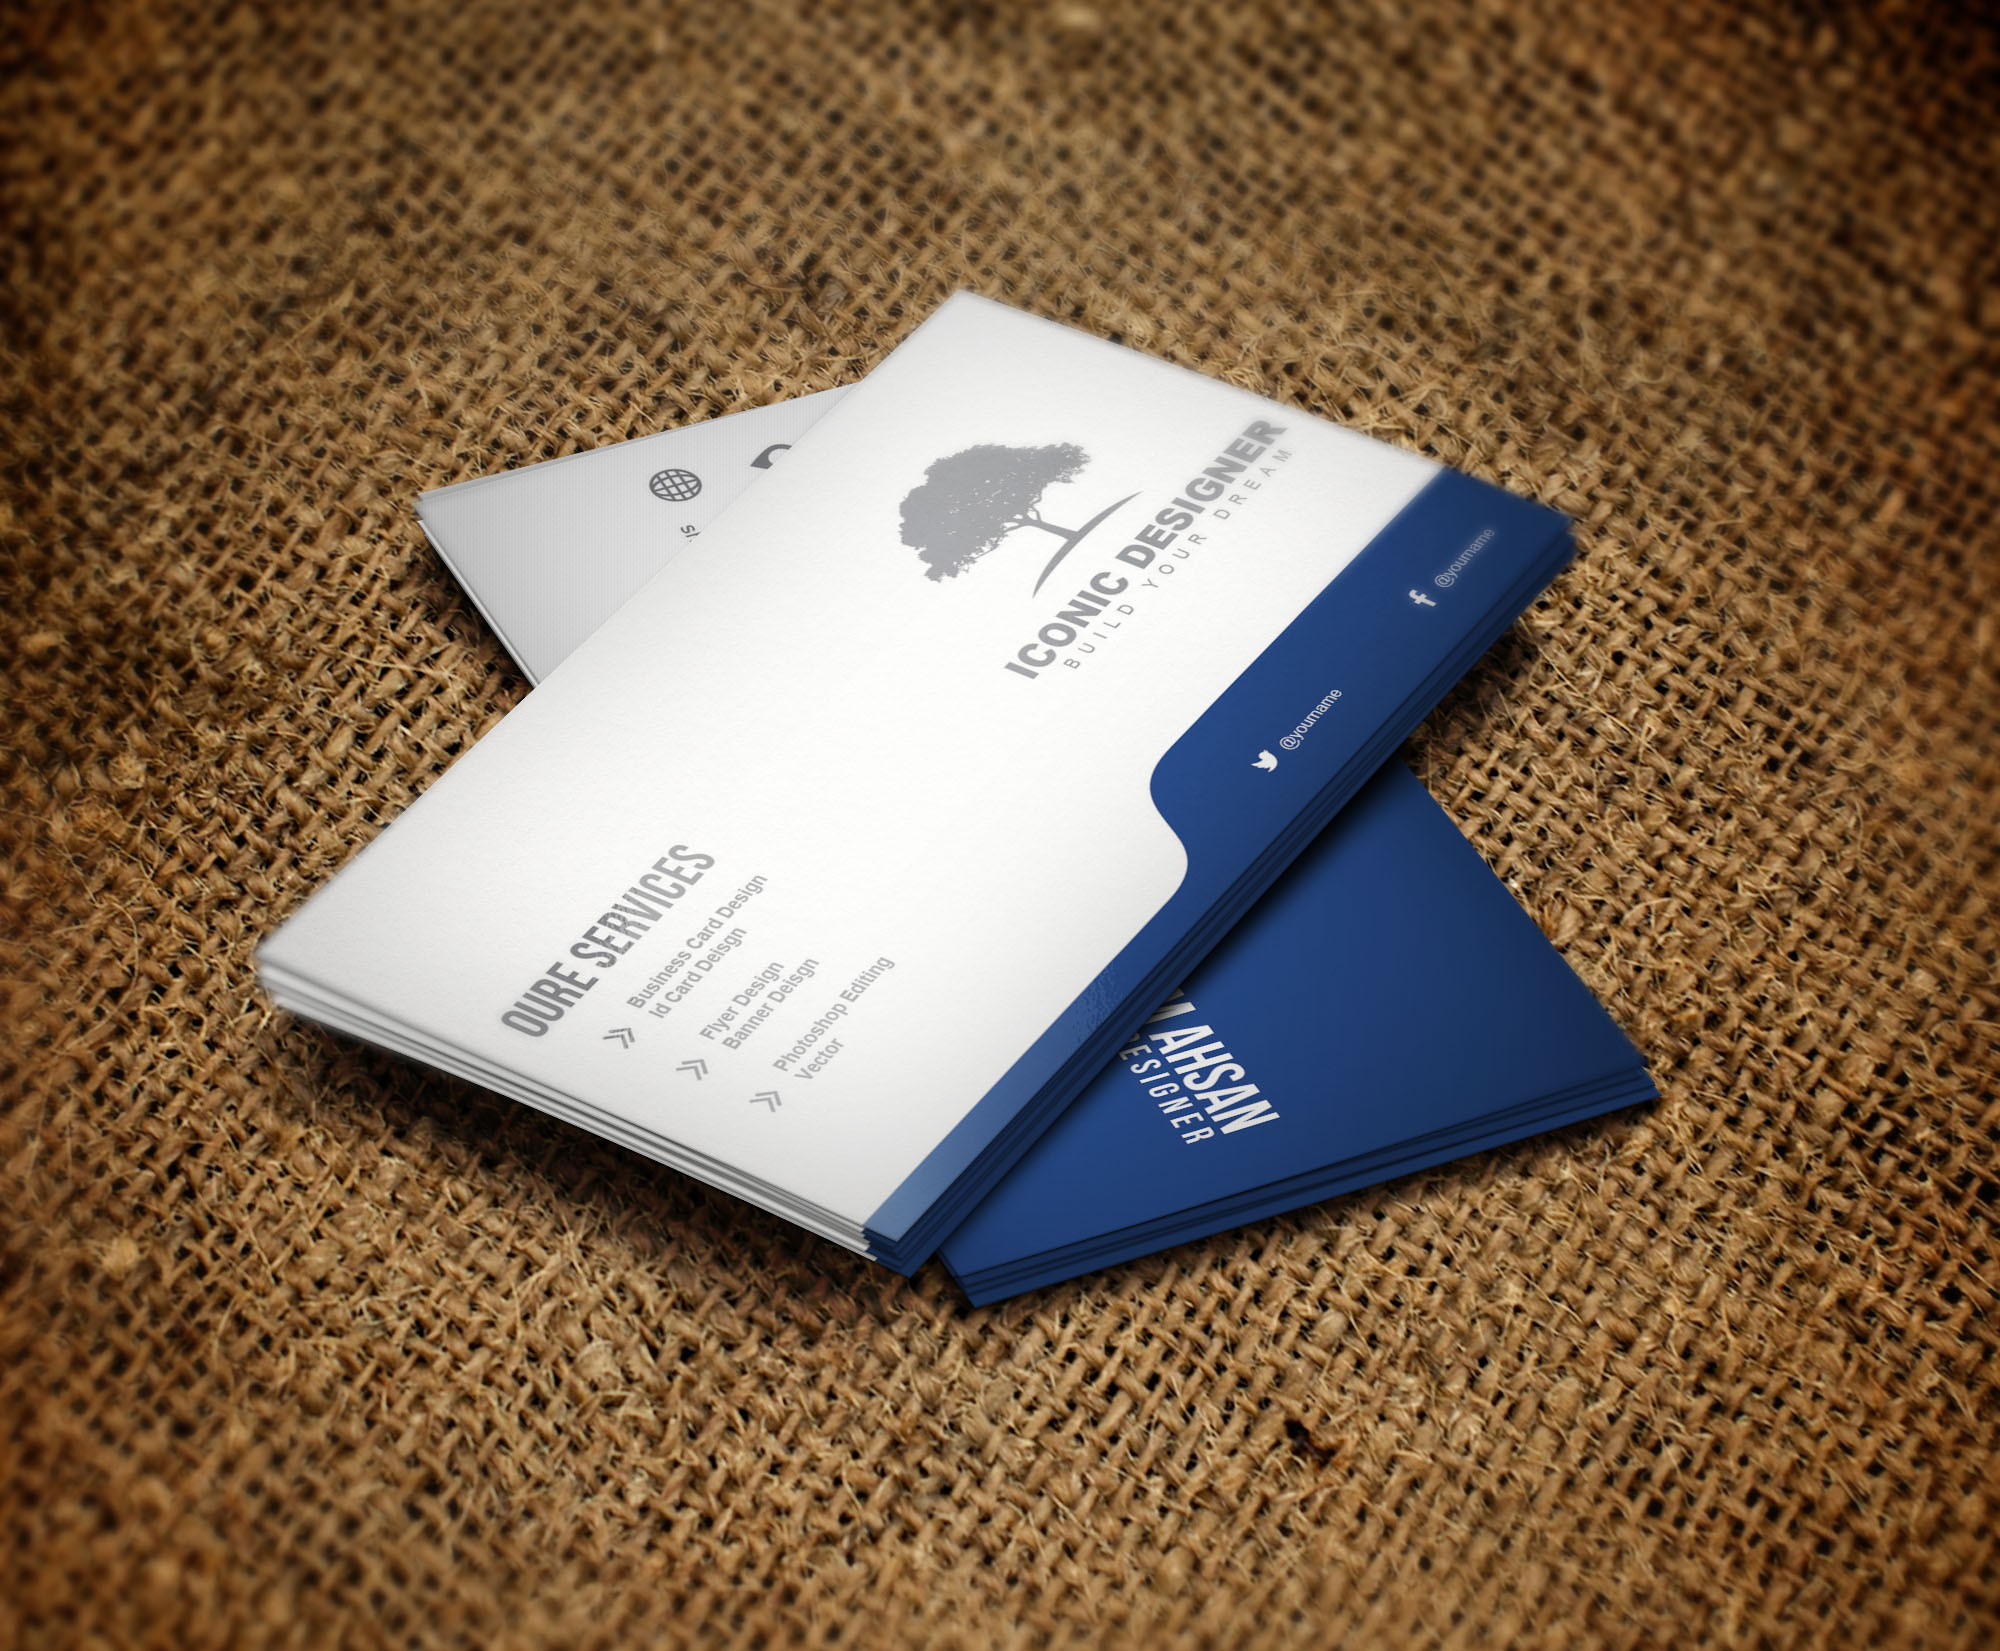 Make Stylish And Professional Business Card for $5 - PixelClerks